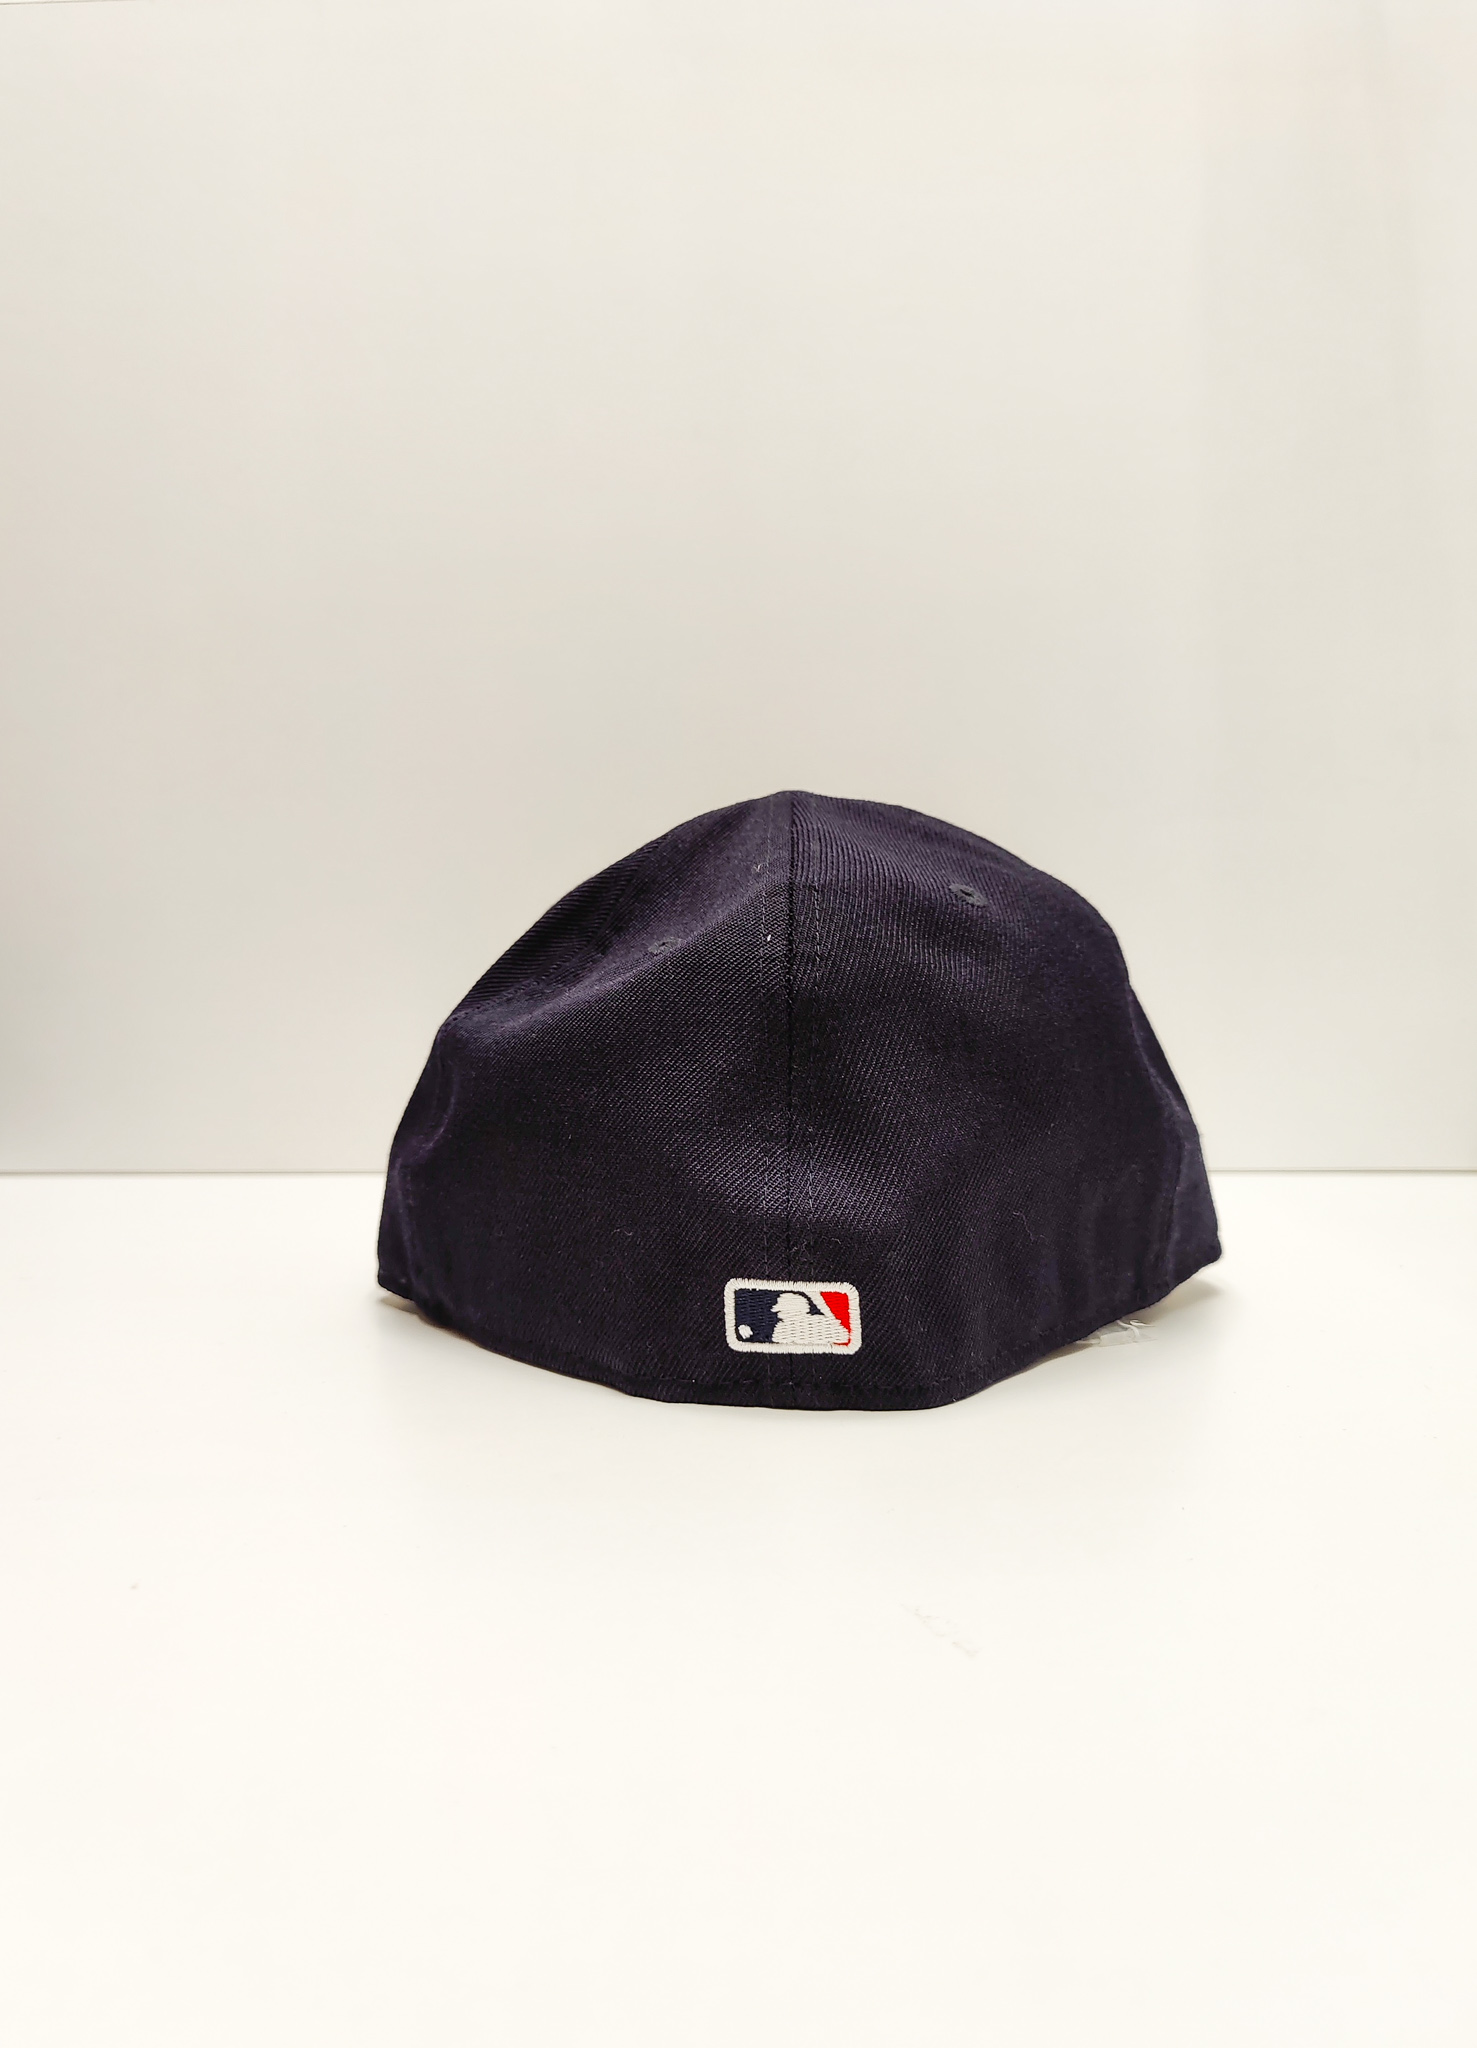 New Era 59Fifty Heritage Series Boston Red Sox